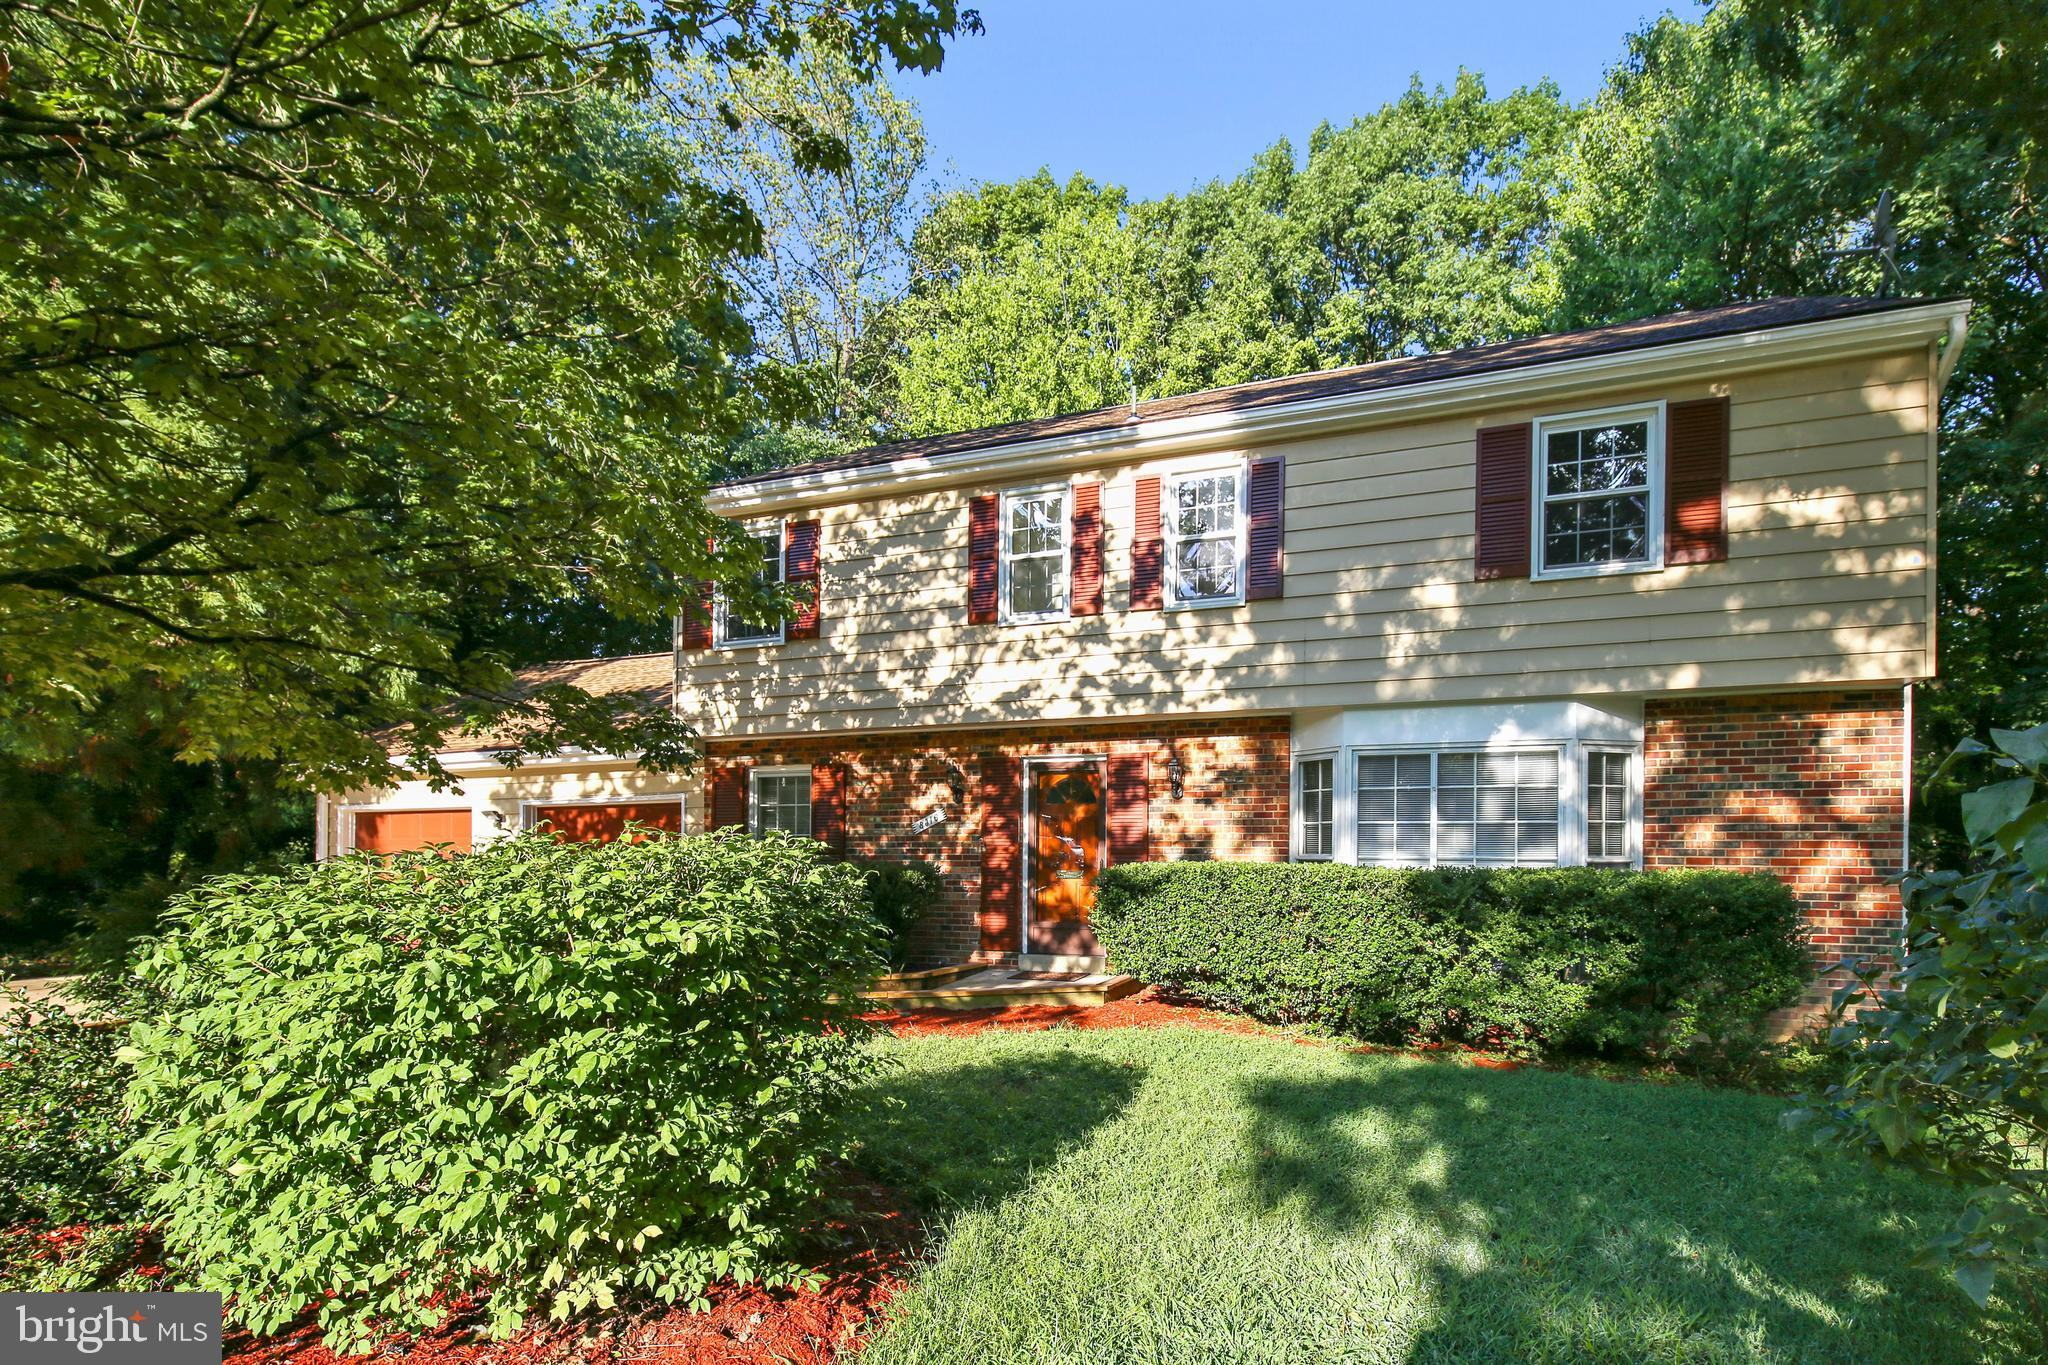 High demand West Springfield 4 bedroom 2 story Colonial located on a private Cul-de-sac lot. Wonderfully updated with refinished hardwood floors, great open kitchen with all new stainless steel appliances, granite counter tops and a breakfast area that walks out to a screen porch and large deck that overlooks the private and wooded back yard. The main floor also features a sun filled living room. formal dining room, den/office, and a family room with fireplace. The second floor offers 4 good sized bedrooms including the master suite with full master bath. Additional features of this home include a new roof, newly painted exterior, over sized 2 car garage, and a walkout basement. Great schools and a prime location make this home highly desirable.